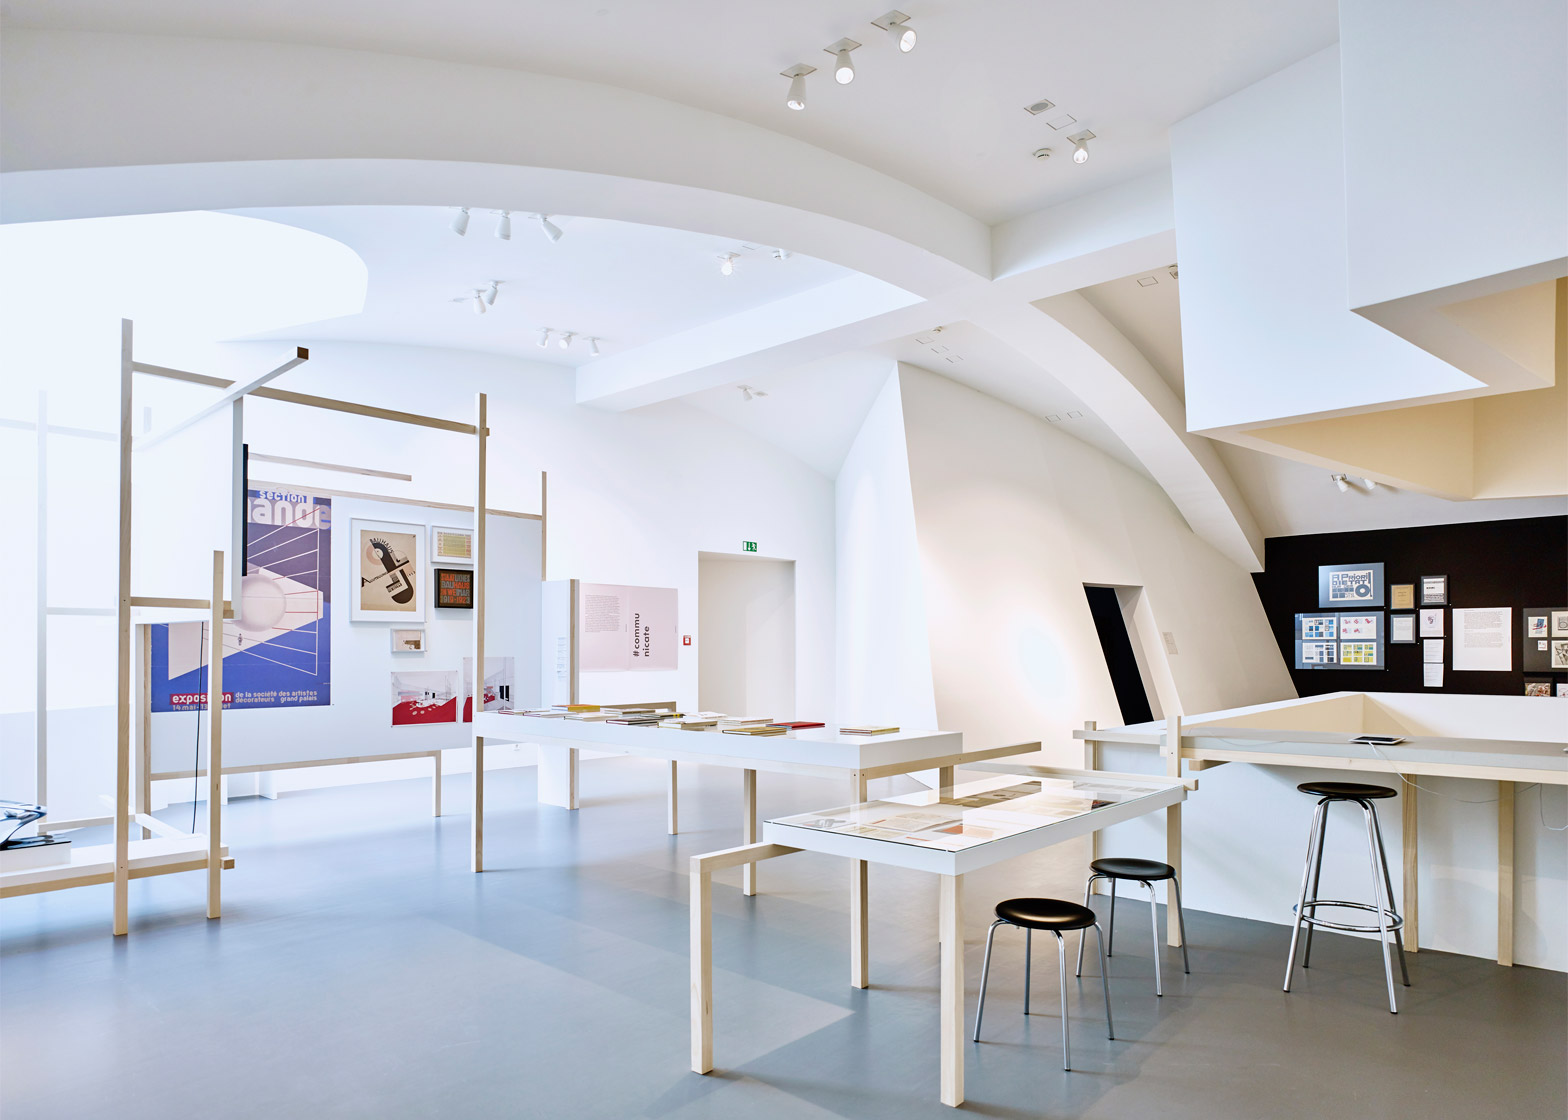 Vitra Design Museum Gallery Vitra Design Museum Hosts Major Bauhaus Retrospective